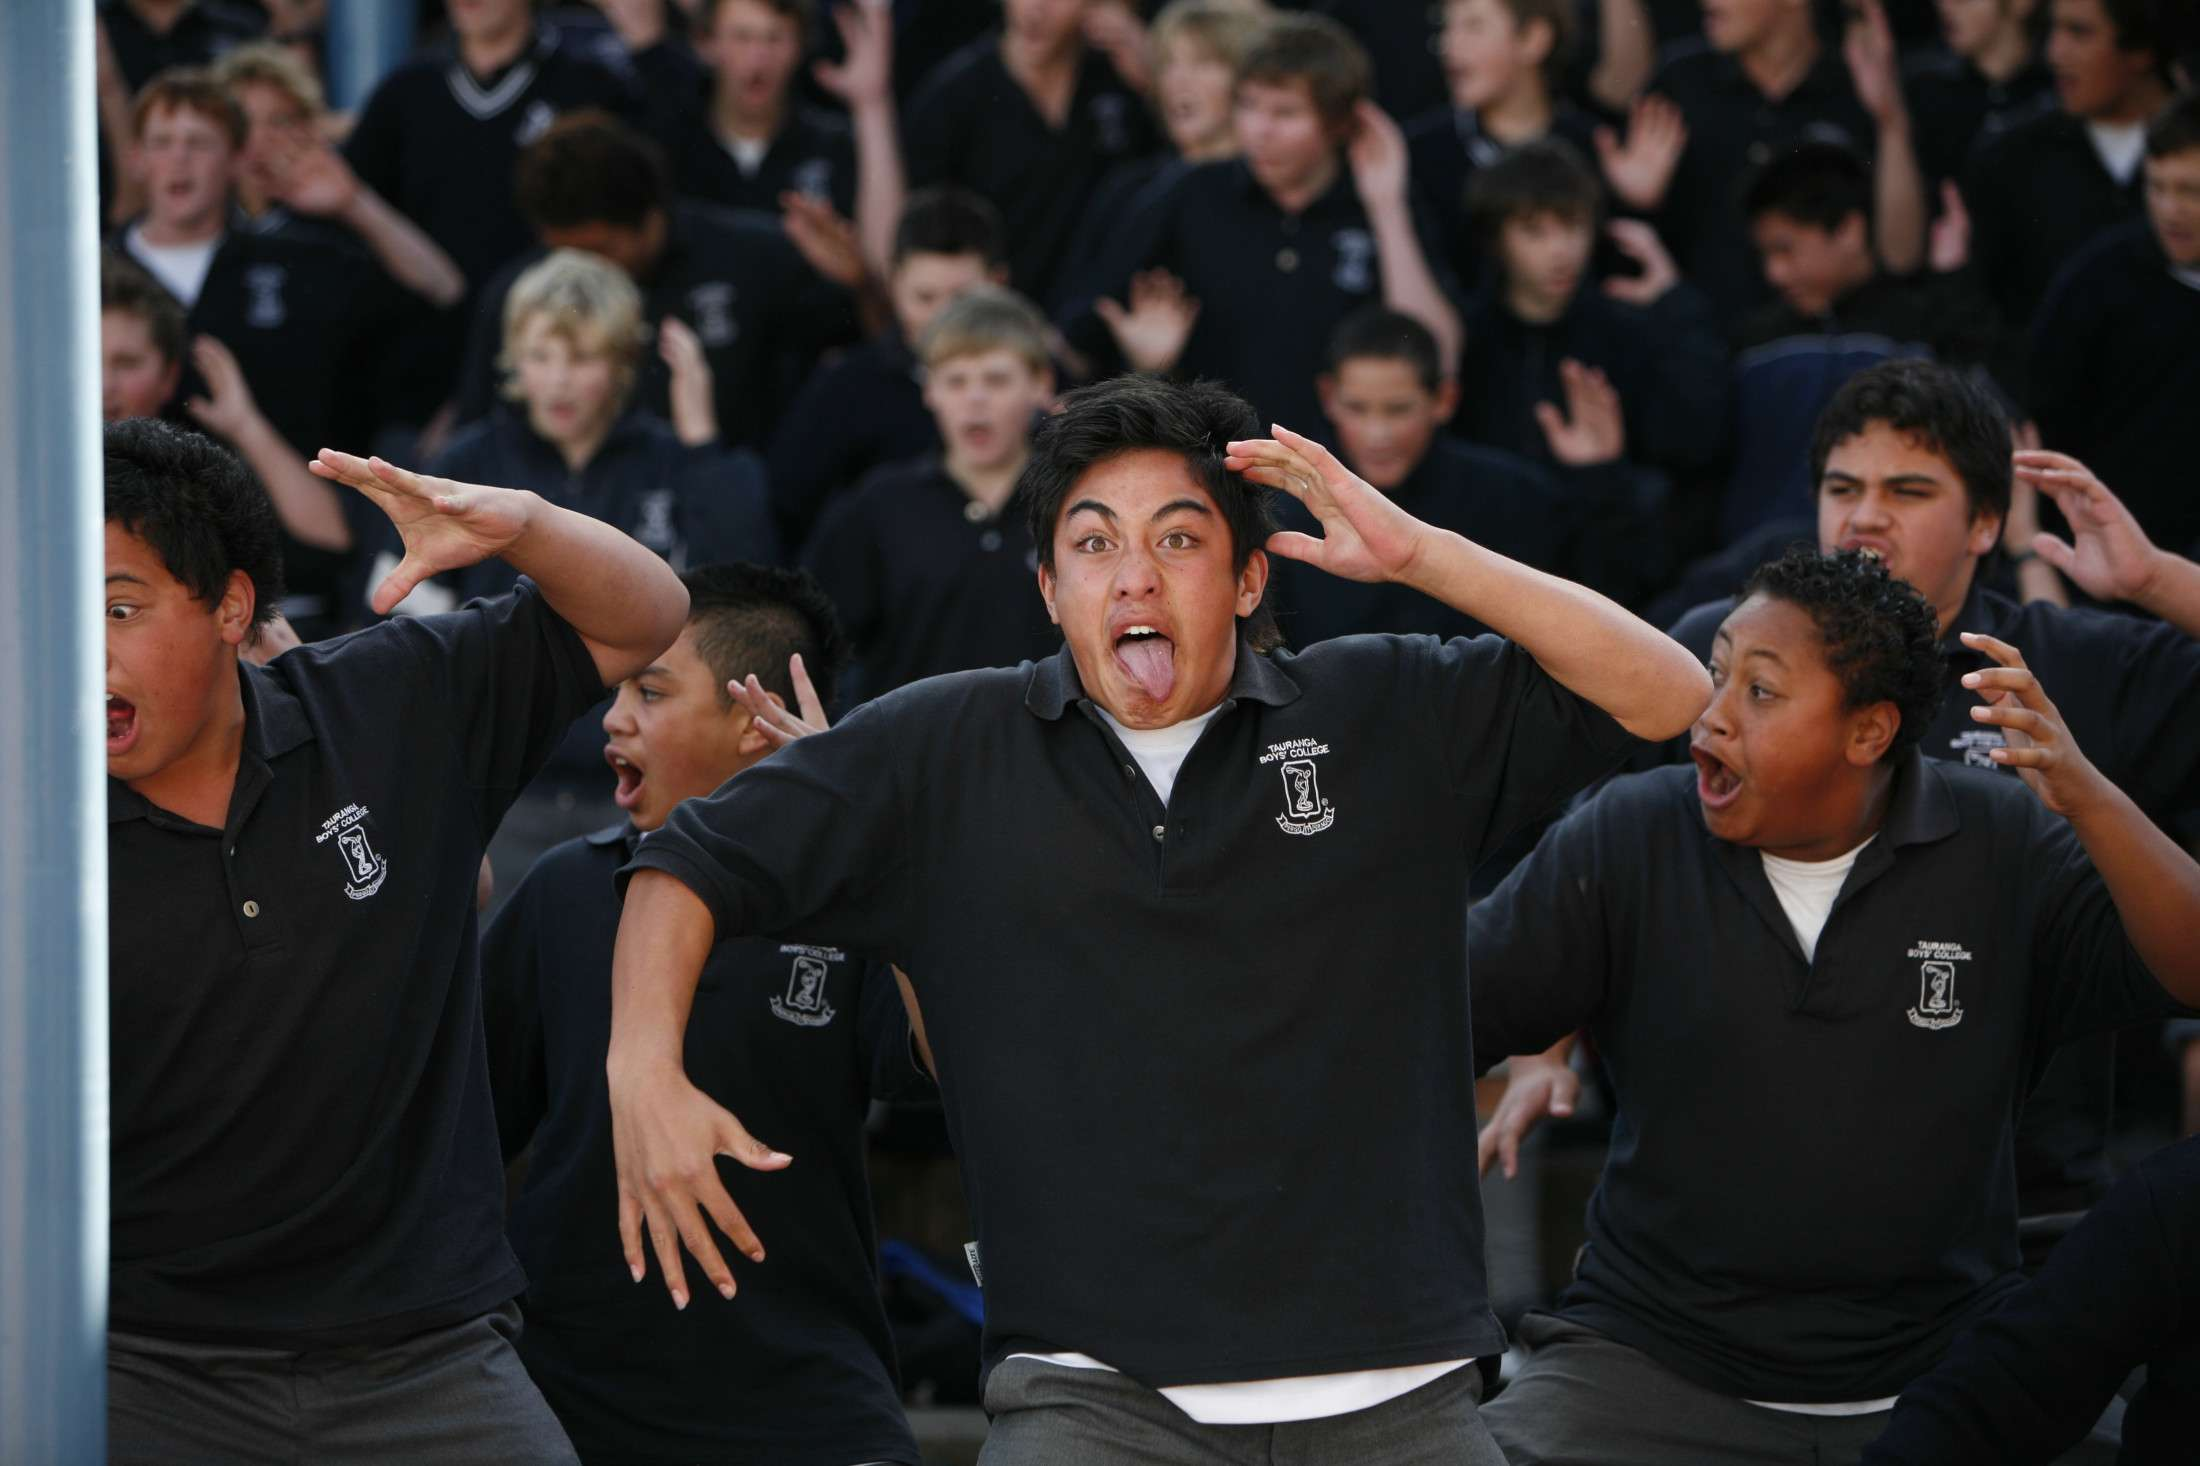 Arts | Culture - Our Programmes - About Us  -  Tauranga Boys' College